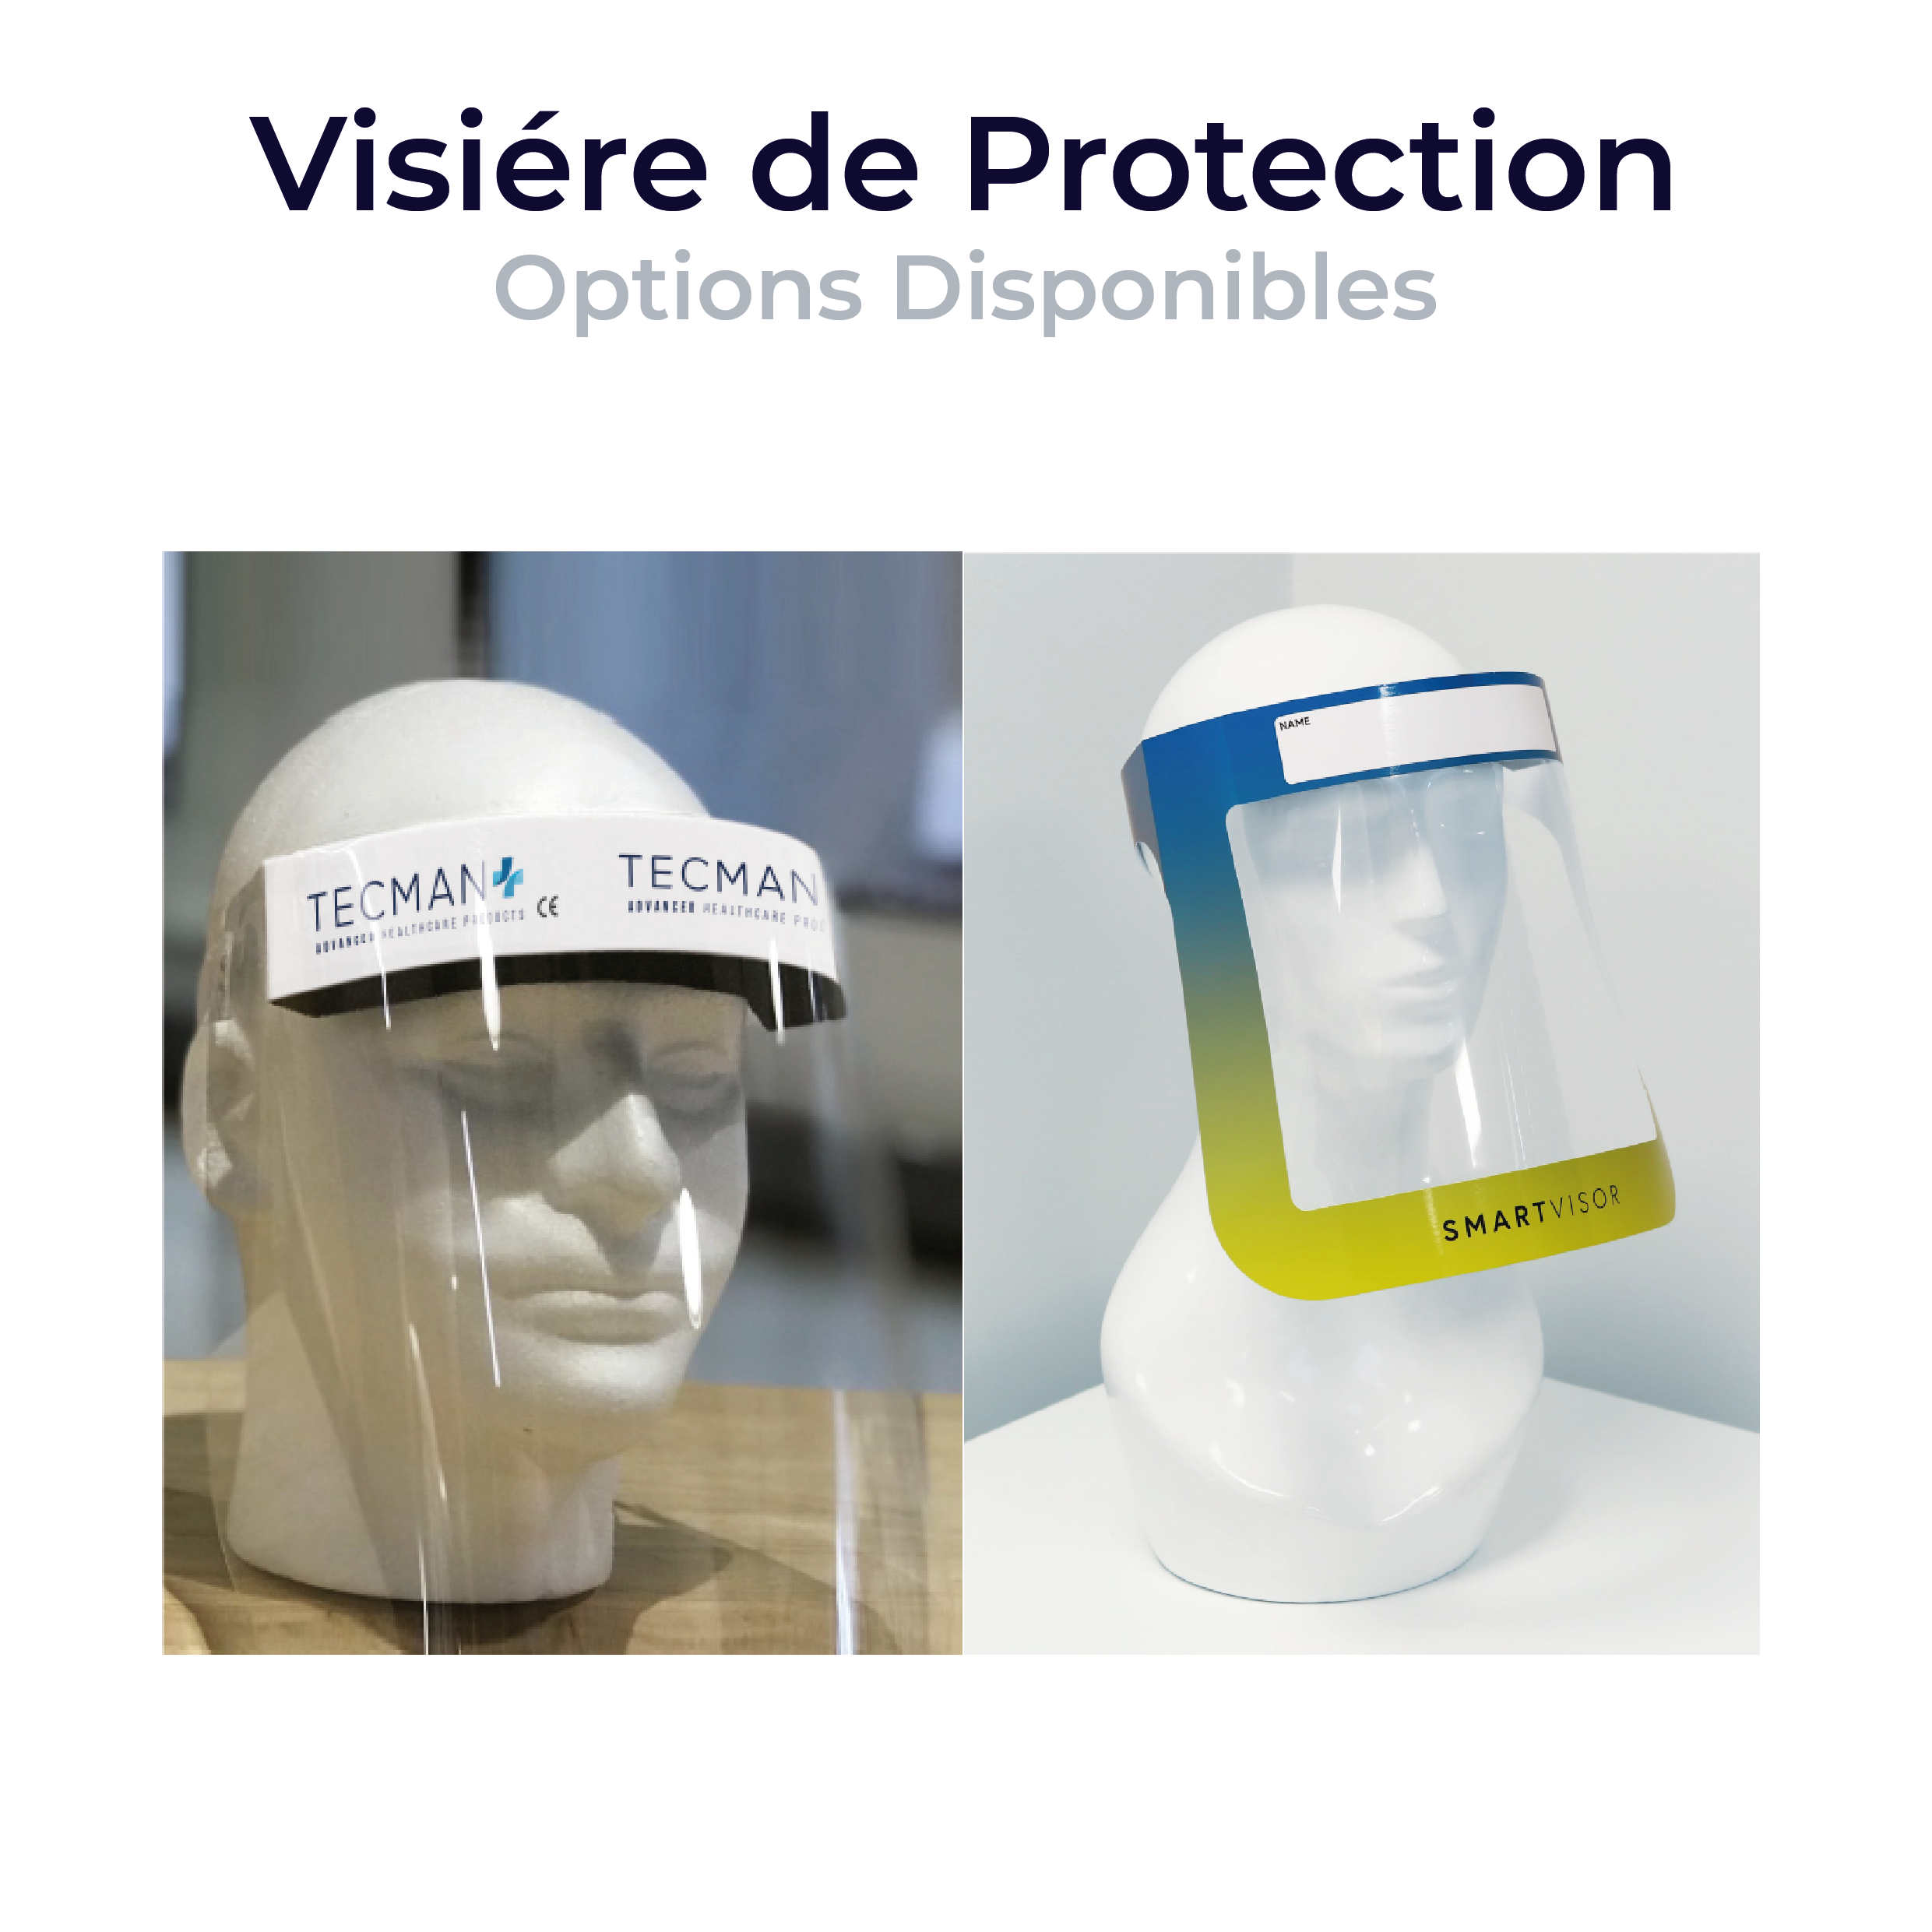 Visiére de Protection